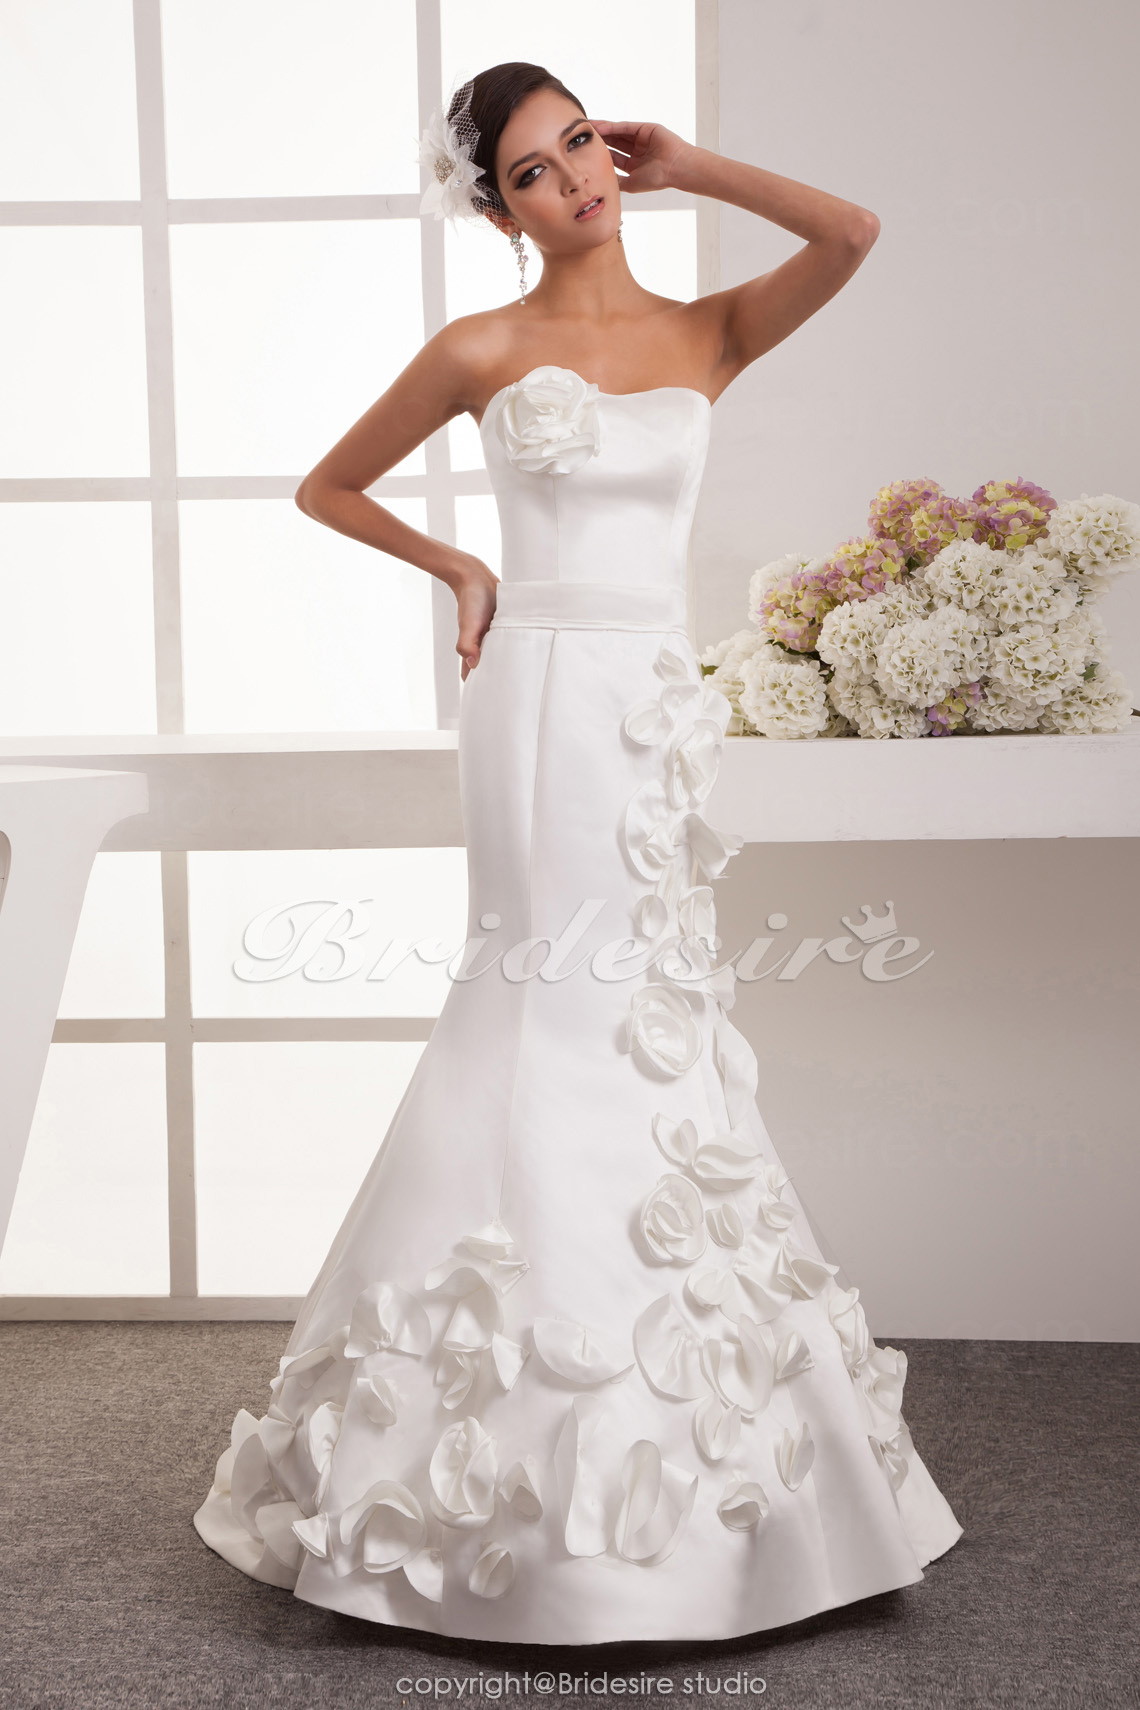 Trumpet/Mermaid Sweetheart Floor-length Sleeveless Satin Wedding Dress